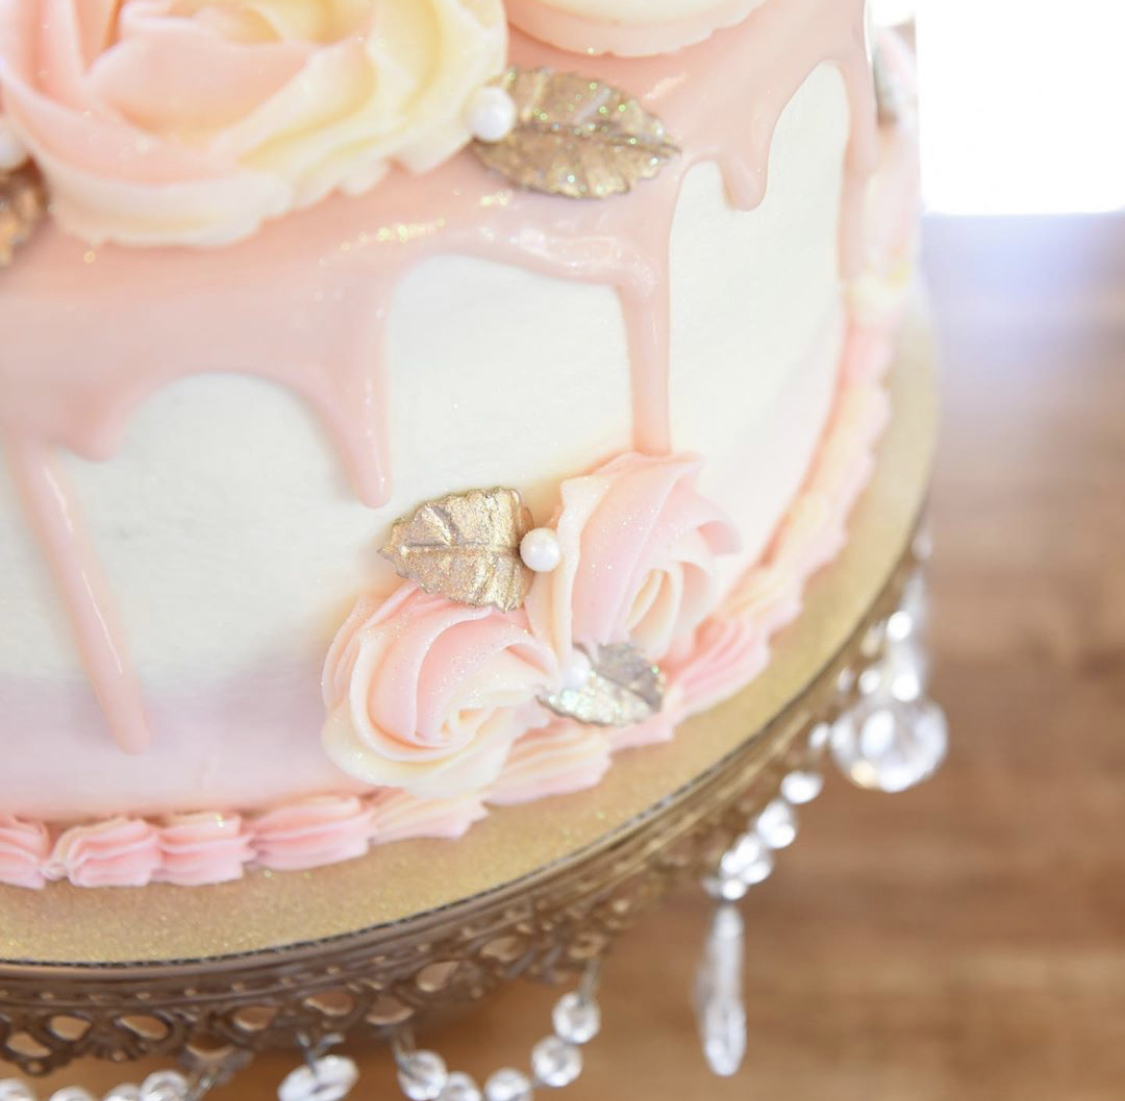 """Cake Pricing Guide - All of our speciality cakes are traditional sponge, with your choice for flavor and filling. All cakes are round with buttercream, rather than fondant work.4"""" Cake: serves 2-4, $30.00+6"""" Cake: serves 8-10, $50.00+8"""" Cake: serves 15-20, $70.00+10"""" Cake: serves 25-30, $90.00+Please note that base prices include a moderate level of design, please inquire with design specifications for a detailed quotation. Photo inspiration is a great starting point."""